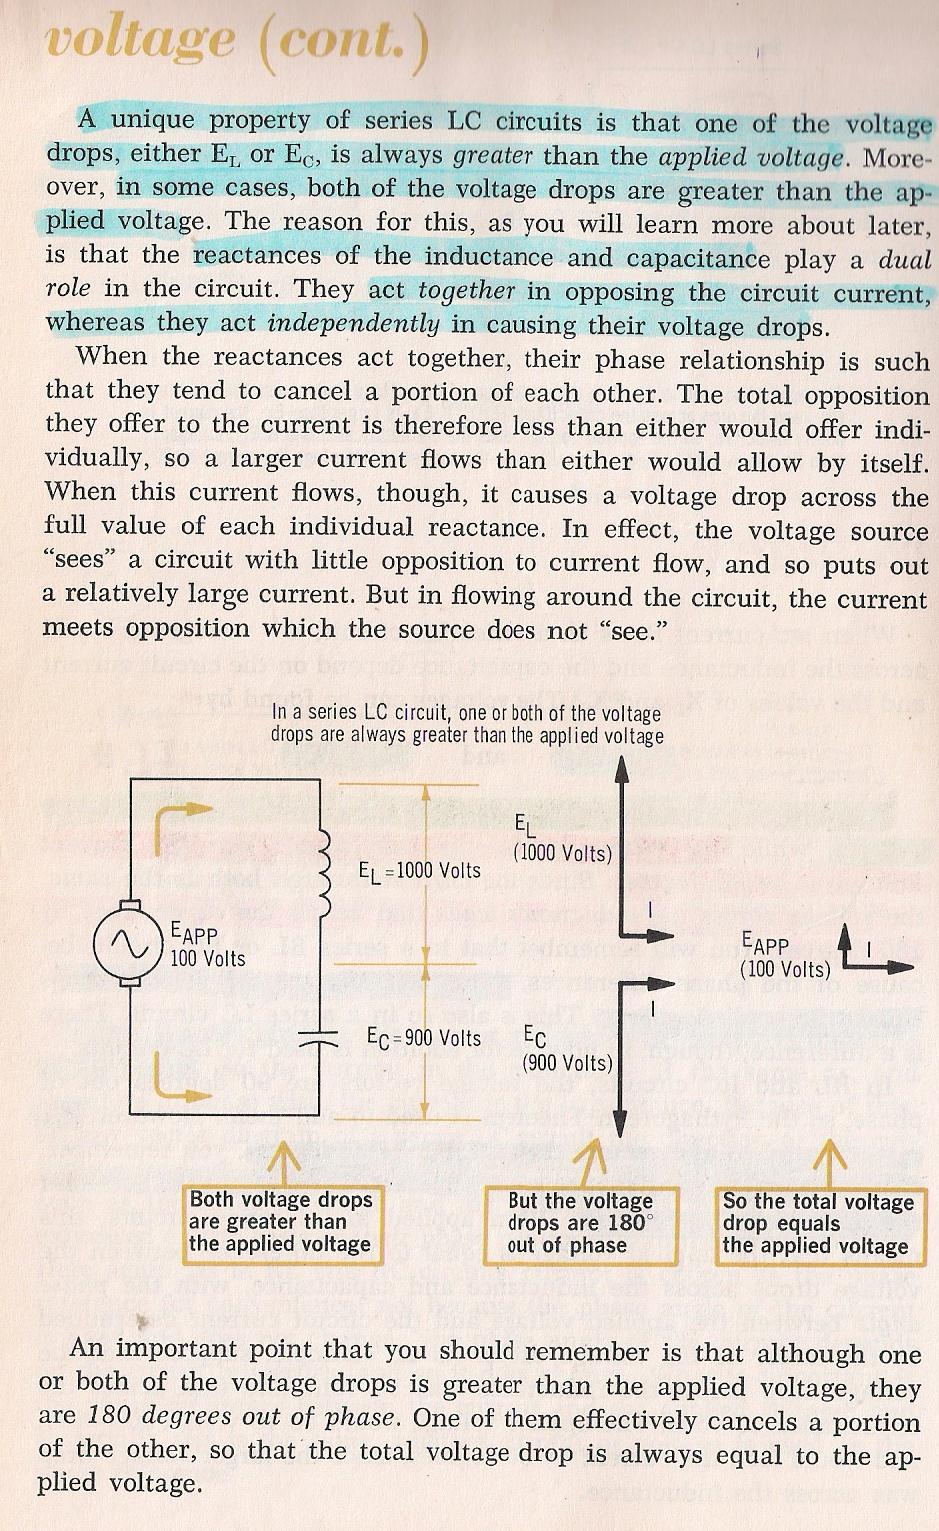 Rlc Circuits In Series The Sum Of Voltages Is Equal To Applied Voltage 041b By Larry E Gugle K4rfe